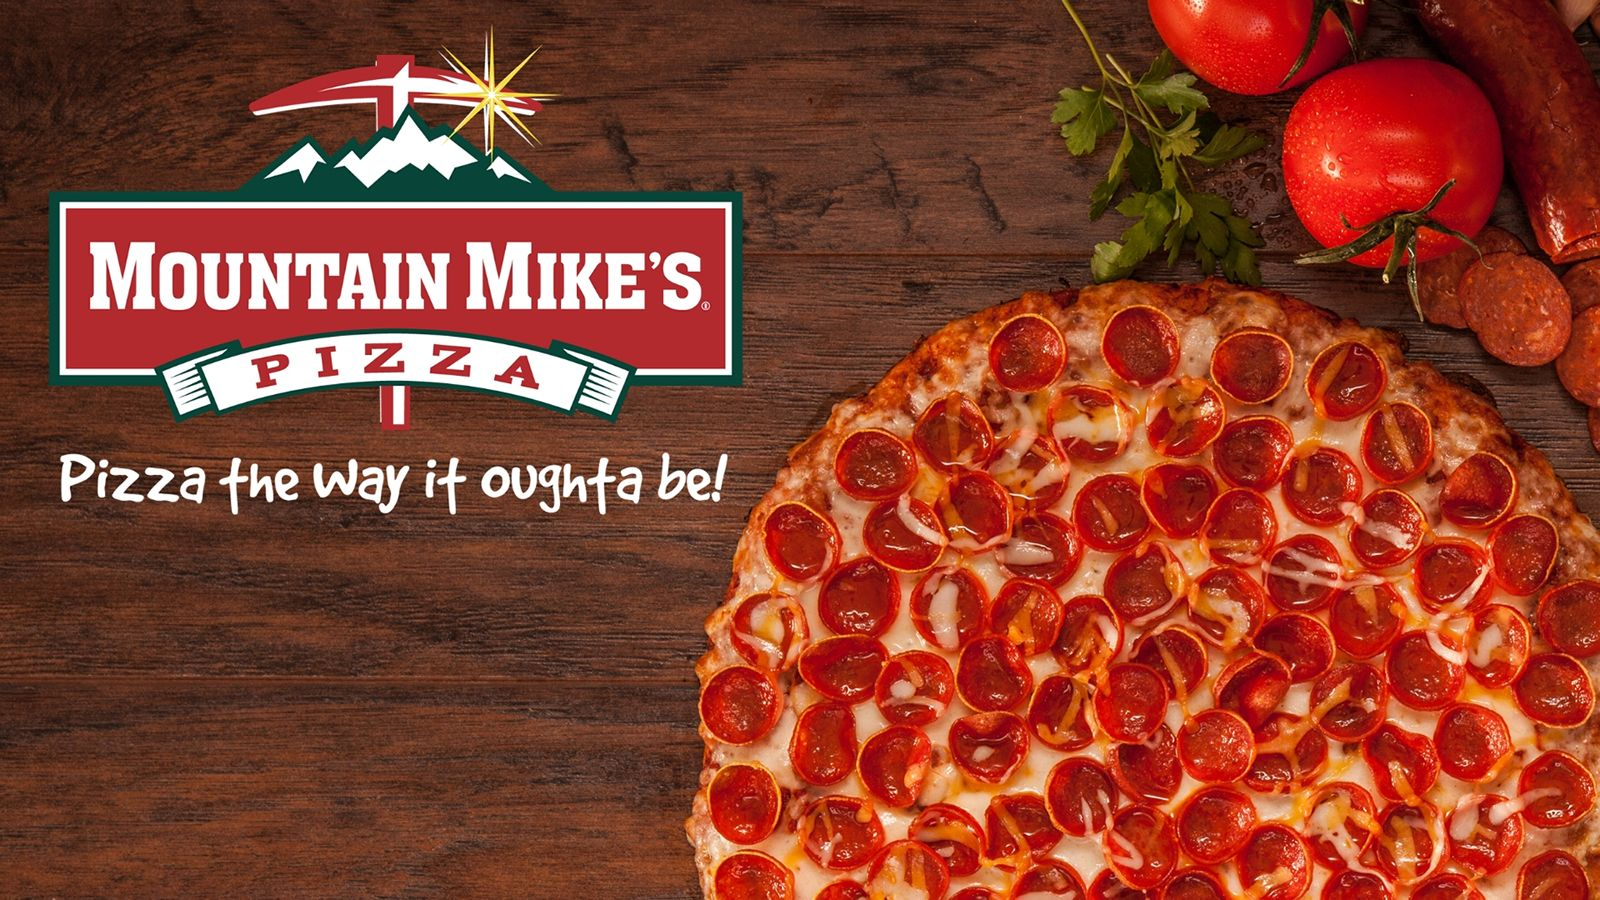 Mountain Mike's Pizza Named One of America's Top Performing Restaurant Chains